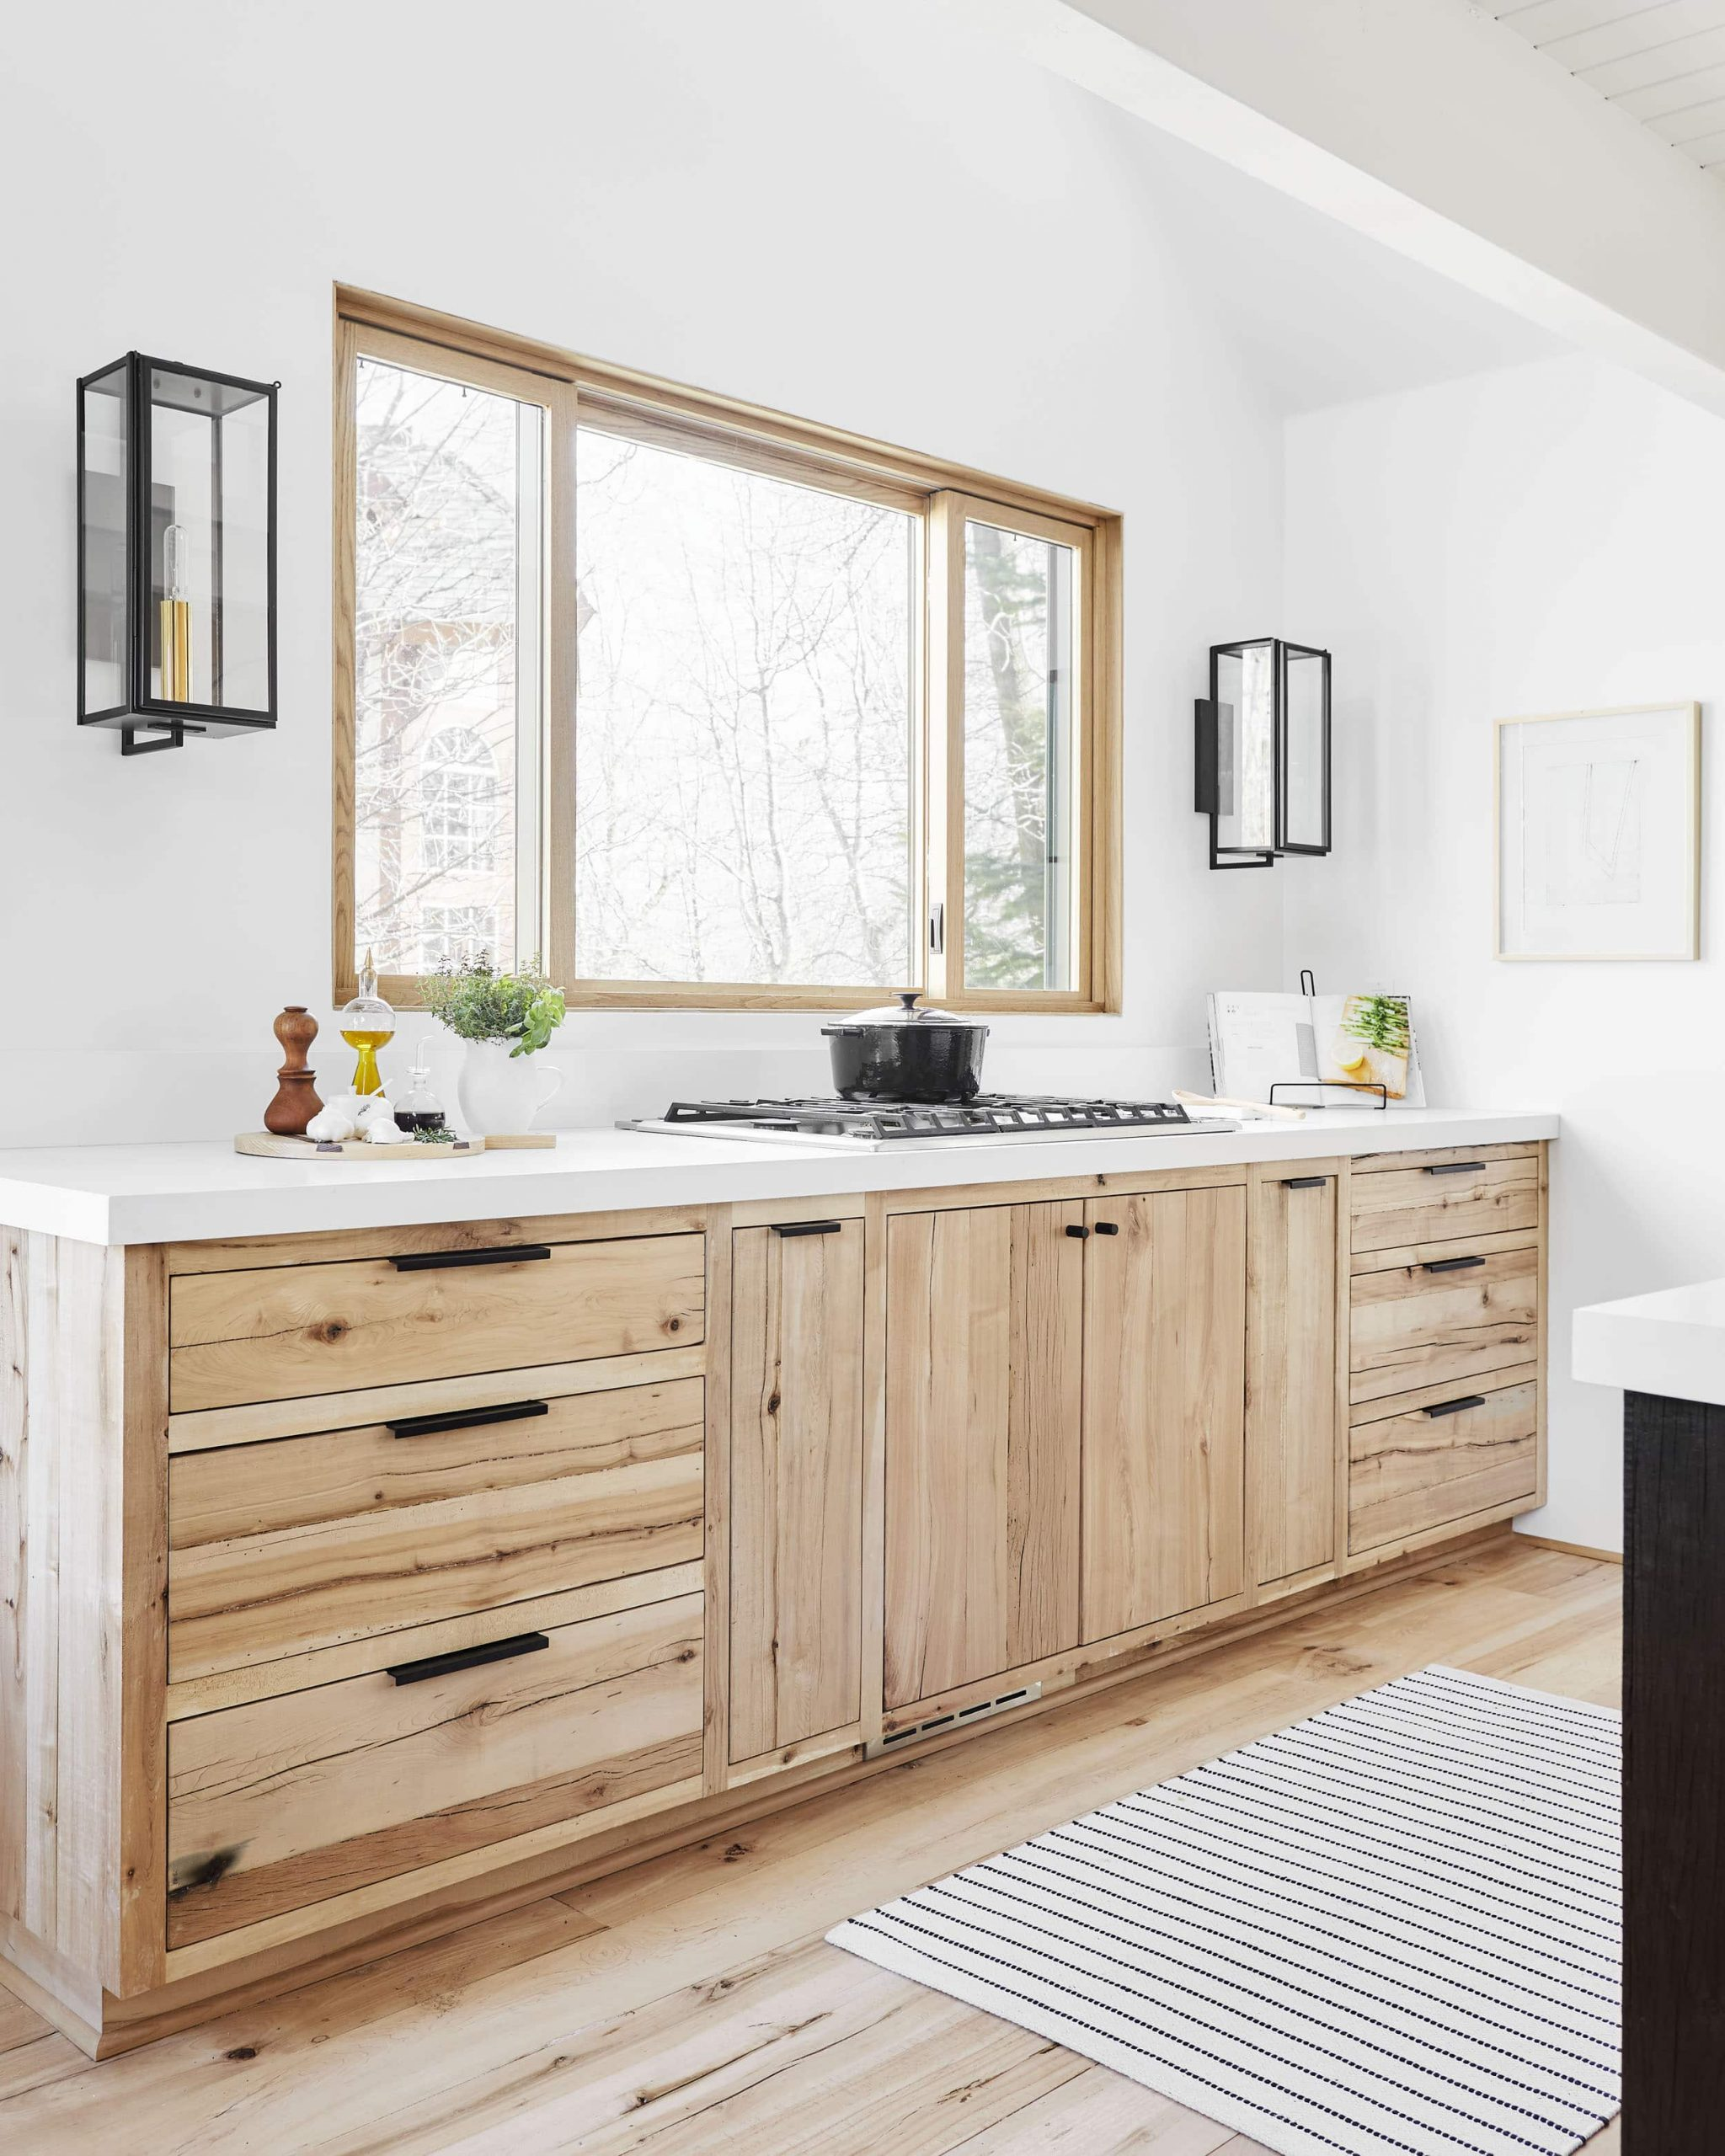 wood kitchen with black hardware and wood floors